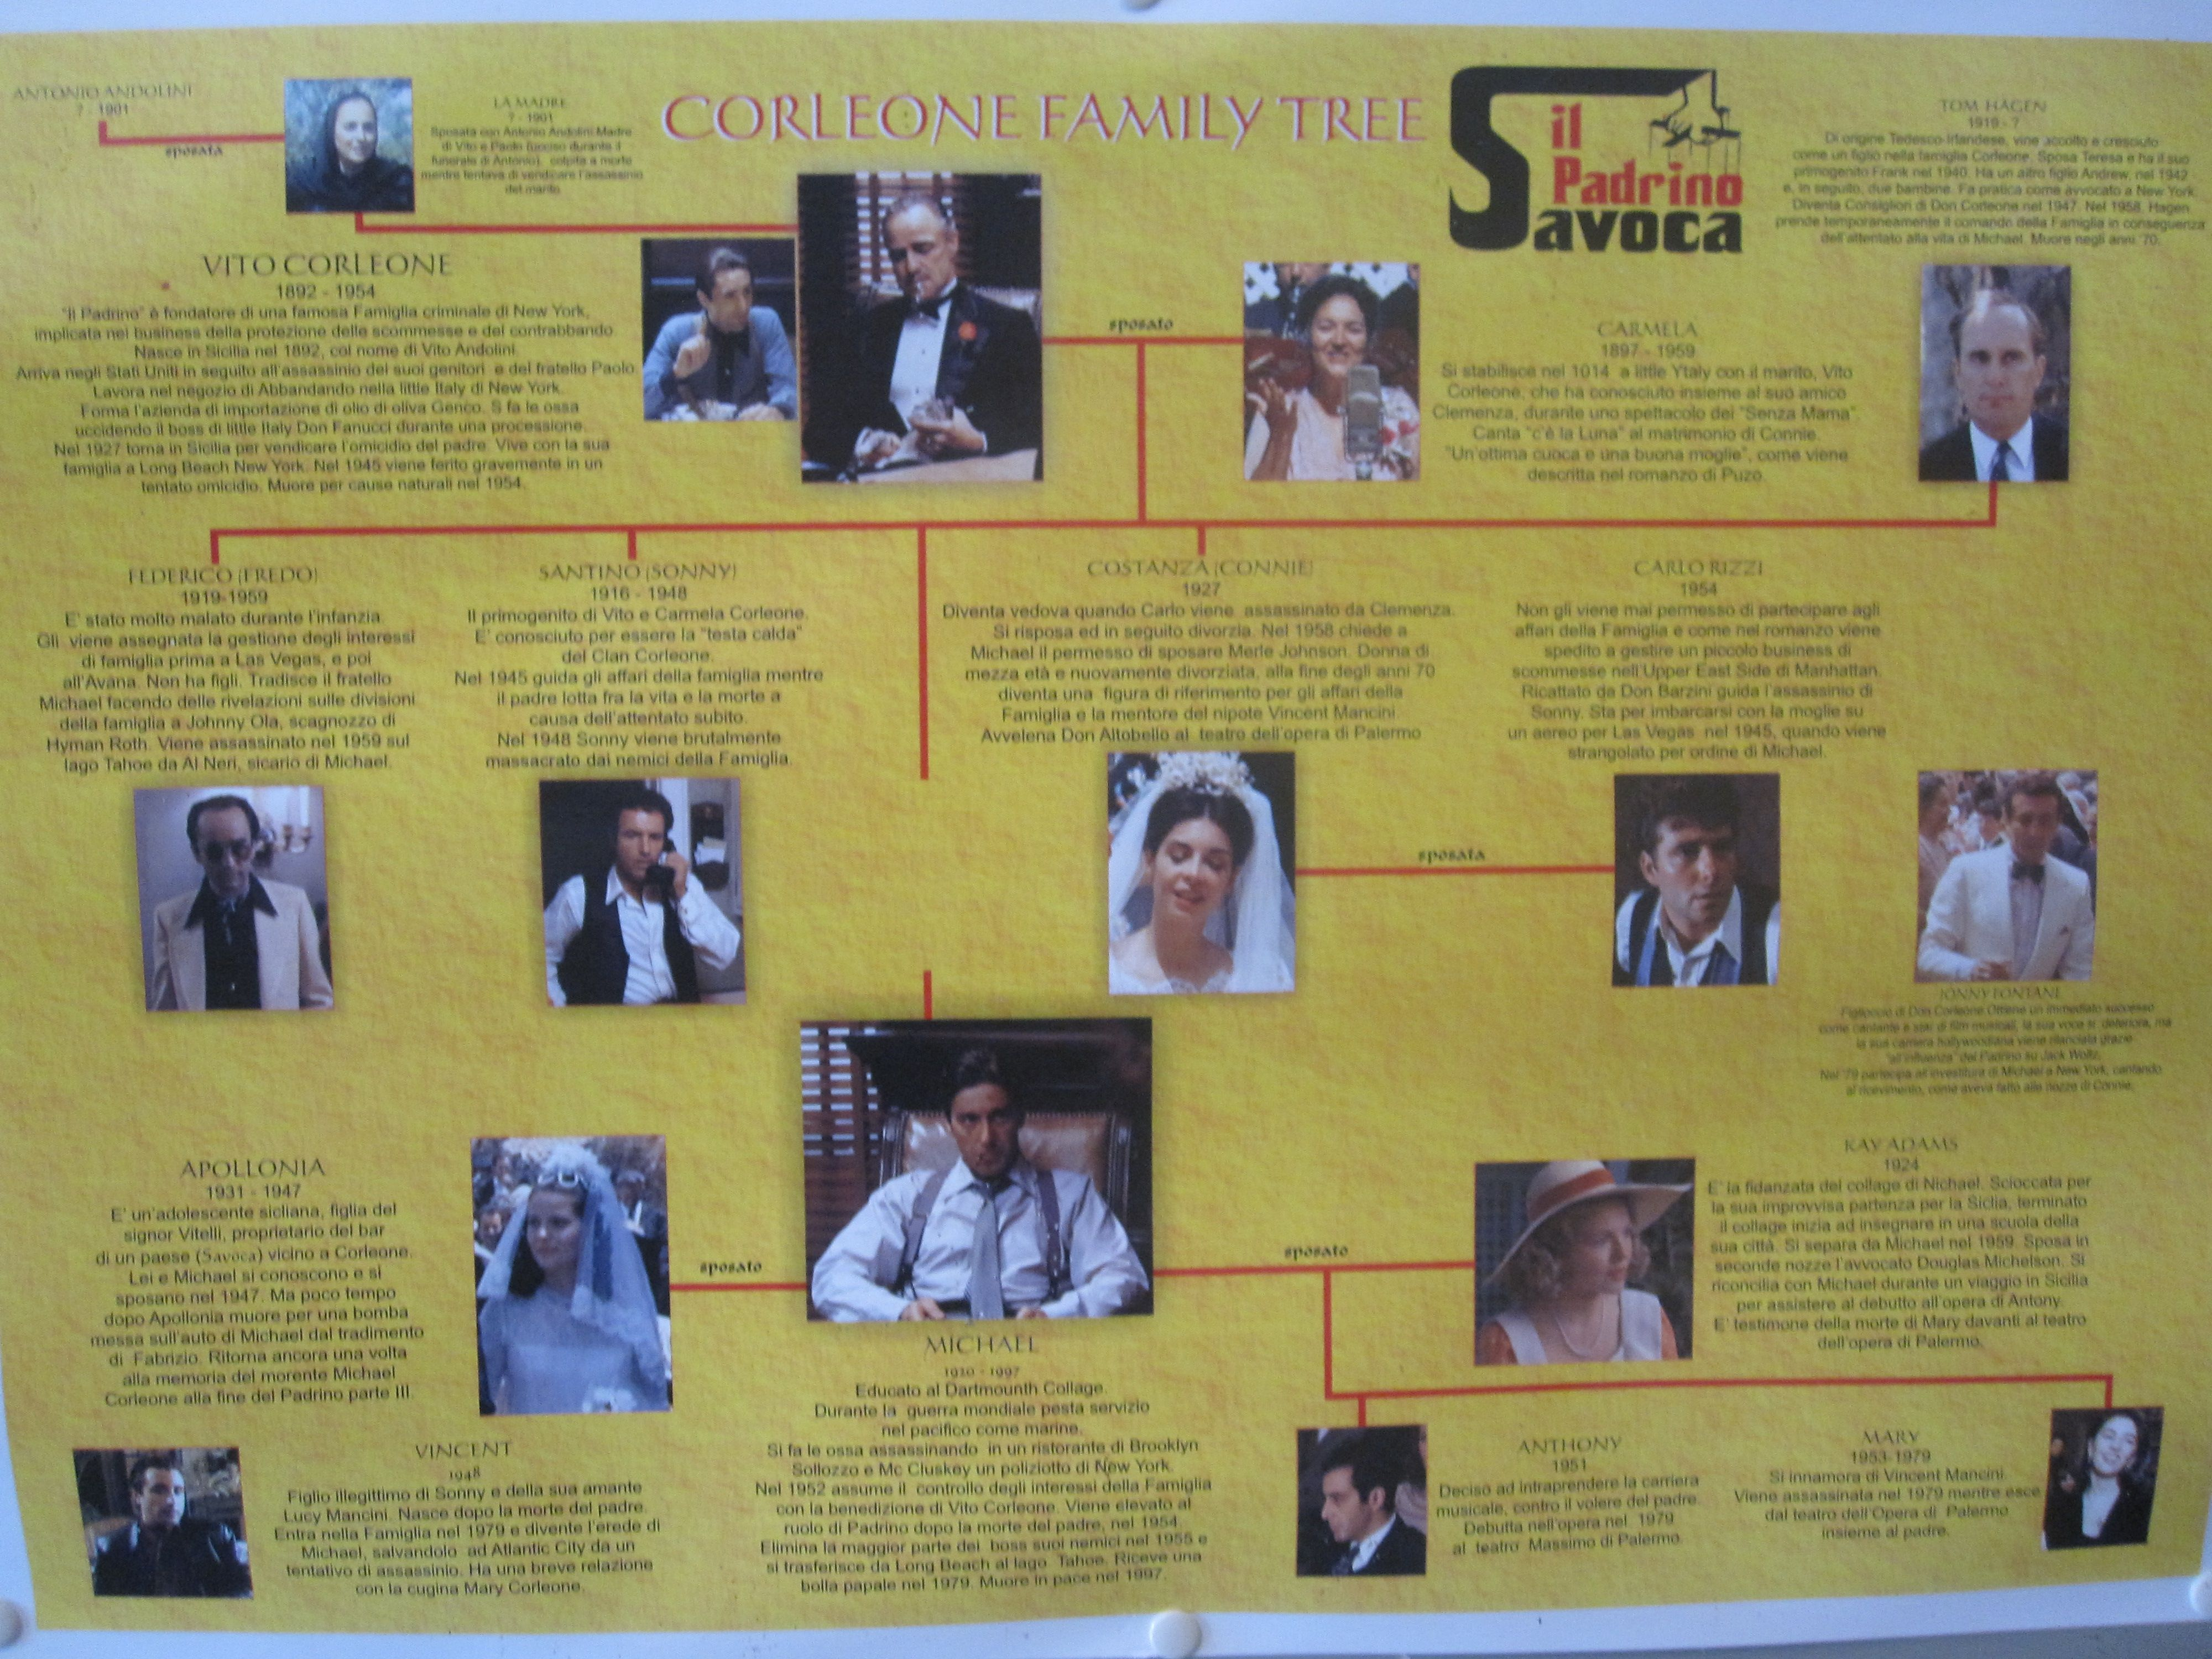 Godfather ilpadrino doncorleone family tree at bar vitelli godfather ilpadrino doncorleone family tree at bar vitelli travel sicily thecheapjerseys Gallery